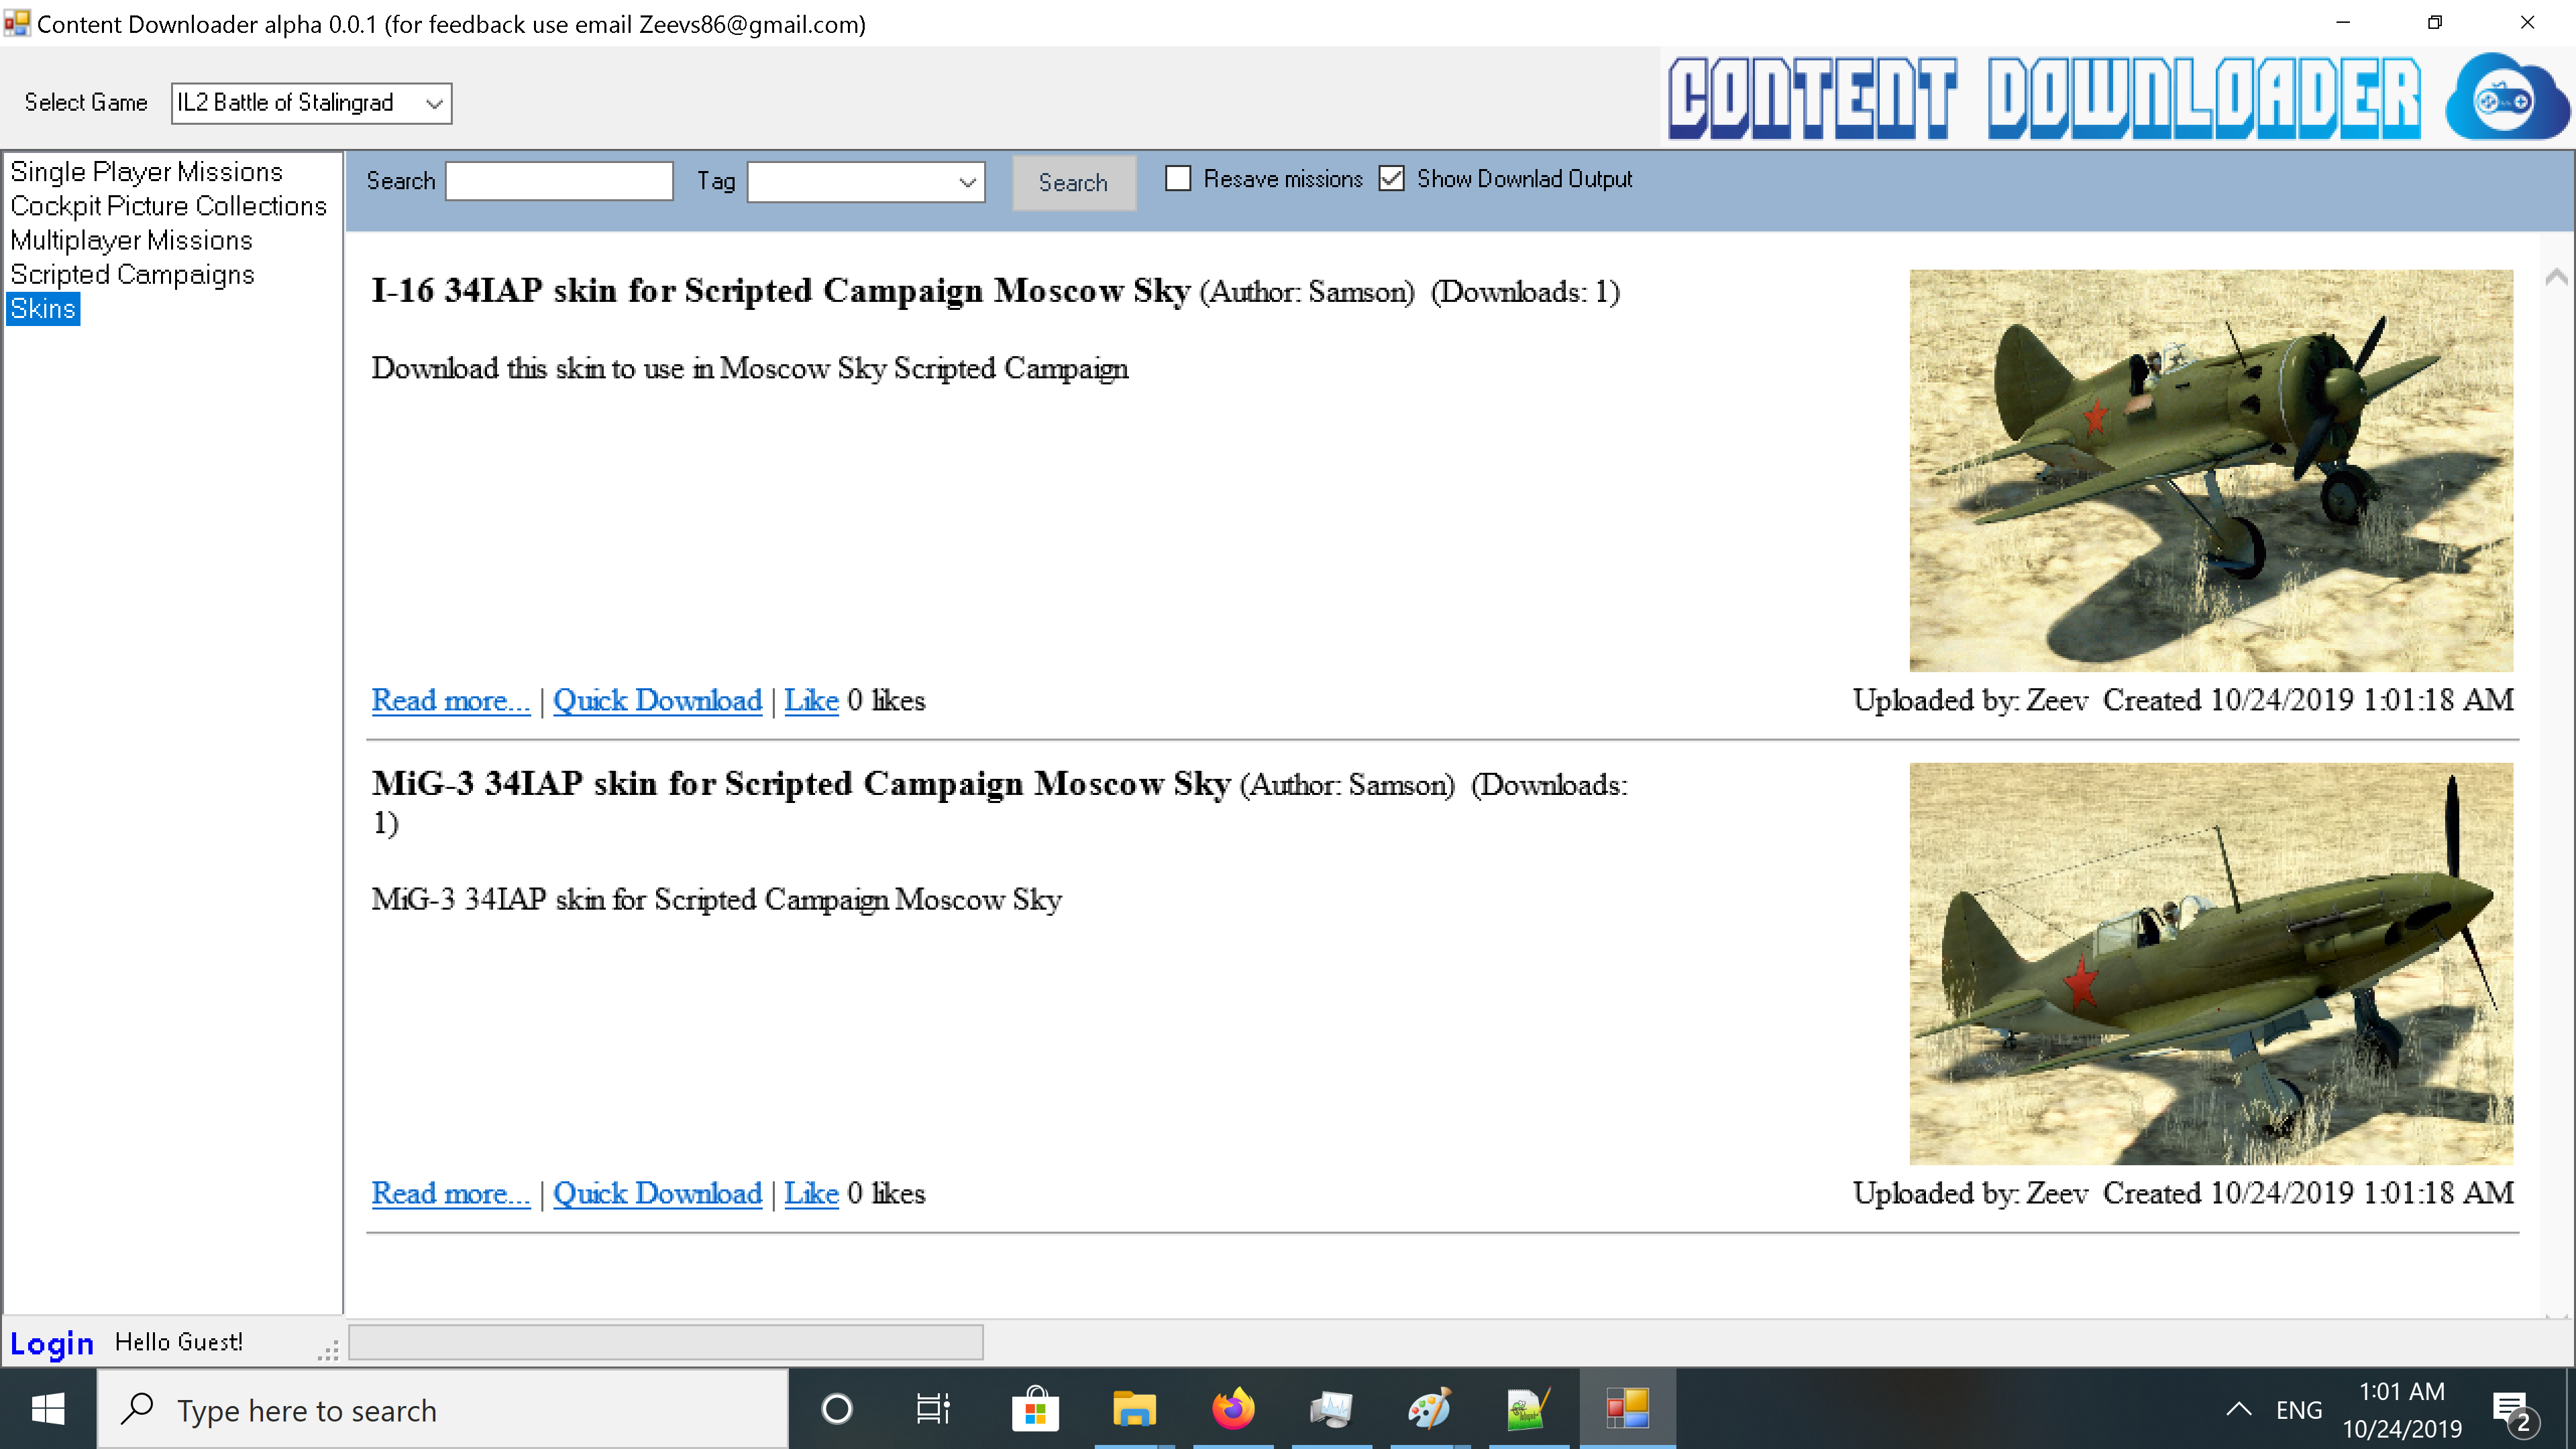 Content-Downloader-Pic7.png